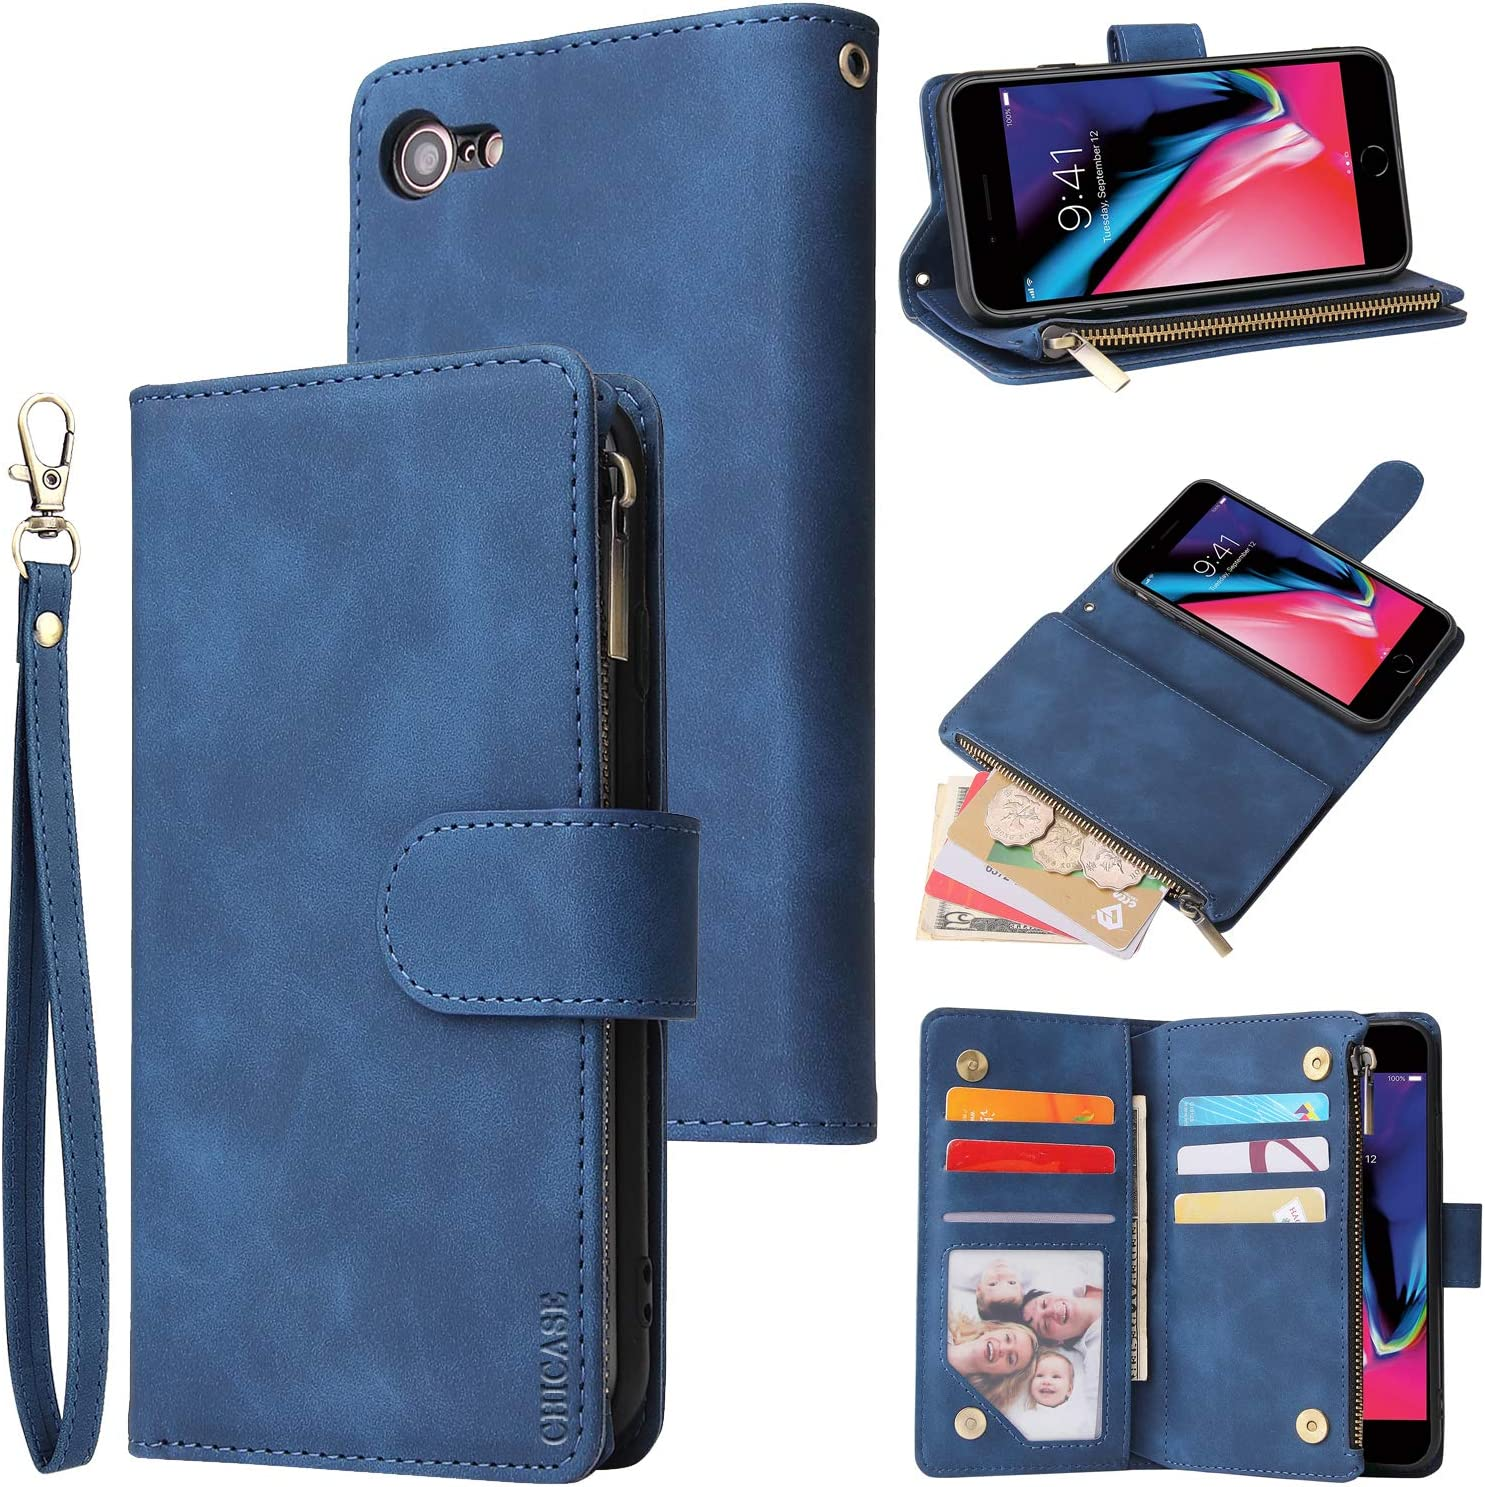 CHICASE Wallet Case for iPhone 6 Plus,iPhone 6s Plus Case,Leather Handbag Zipper Pocket Card Holder Slots Wrist Strap Flip Protective Phone Cover for Apple iPhone 6/6S Plus(Blue)